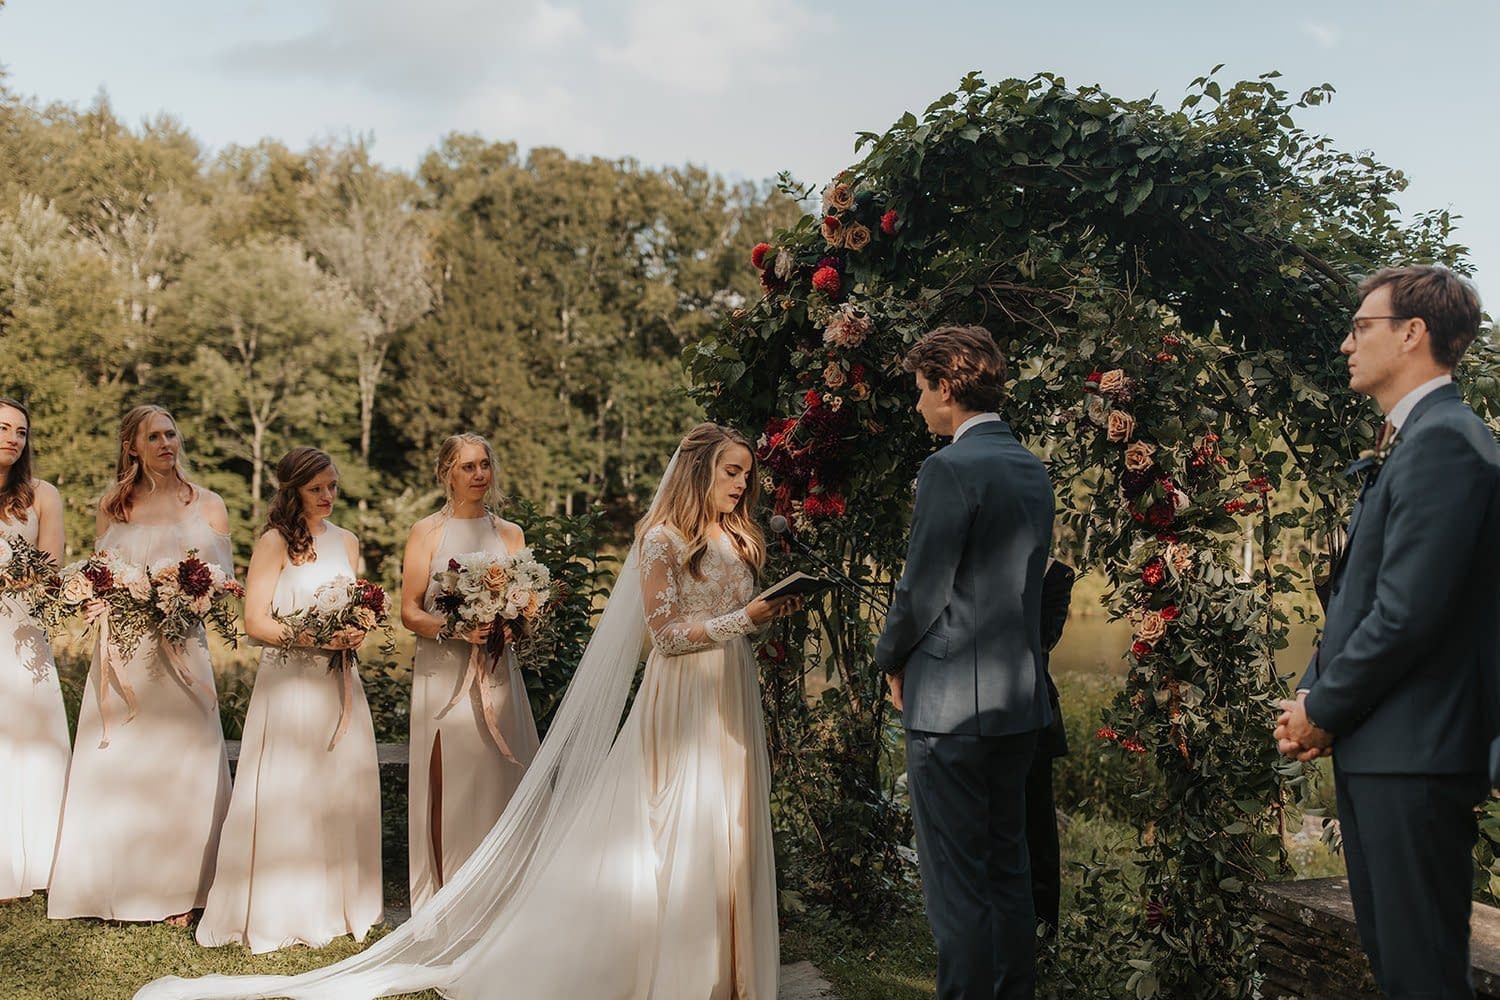 Bride and groom standing beside romantic outdoor fall ceremony arbor while holding a modern September bridal bouquet of garden roses, hanging amaranth, sweet peas, dahlias, cosmos and zinnias by Nectar and Root, Vermont wedding florist at Edson Hill in Stowe, Vermont.